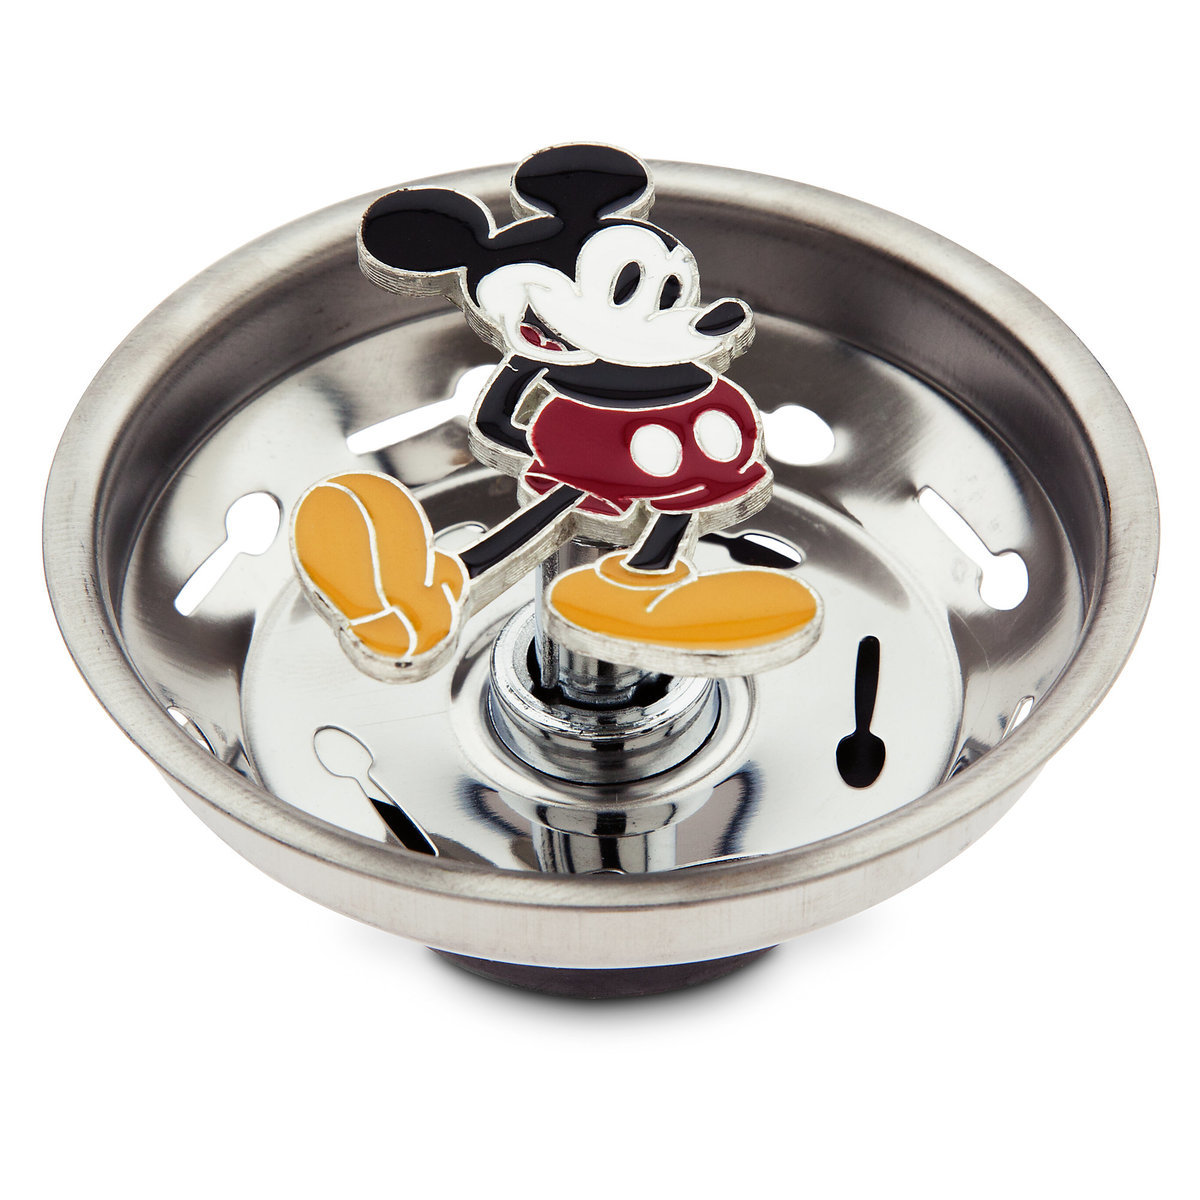 Kitchen Sink Strainer Mickey mouse kitchen sink strainer shopdisney thumbnail image of mickey mouse kitchen sink strainer 1 workwithnaturefo